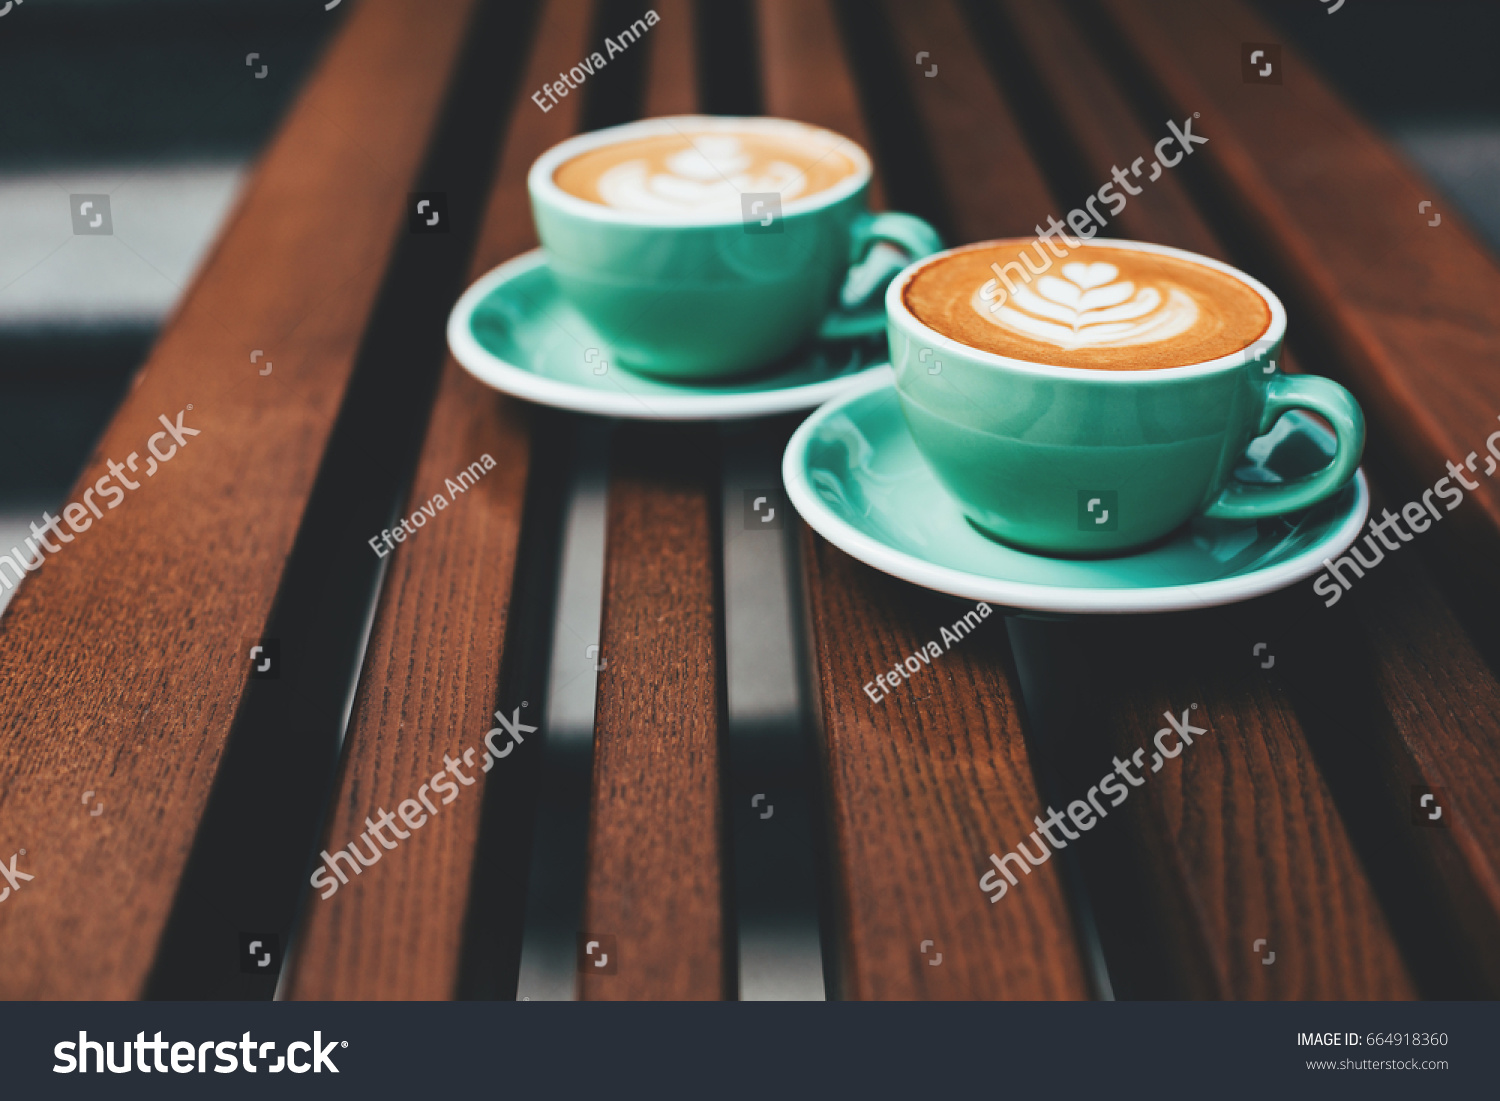 Two cups of cappuccino with latte art on wooden background. Beautiful foam, greenery ceramic cups, stylish toning, place for text. #664918360